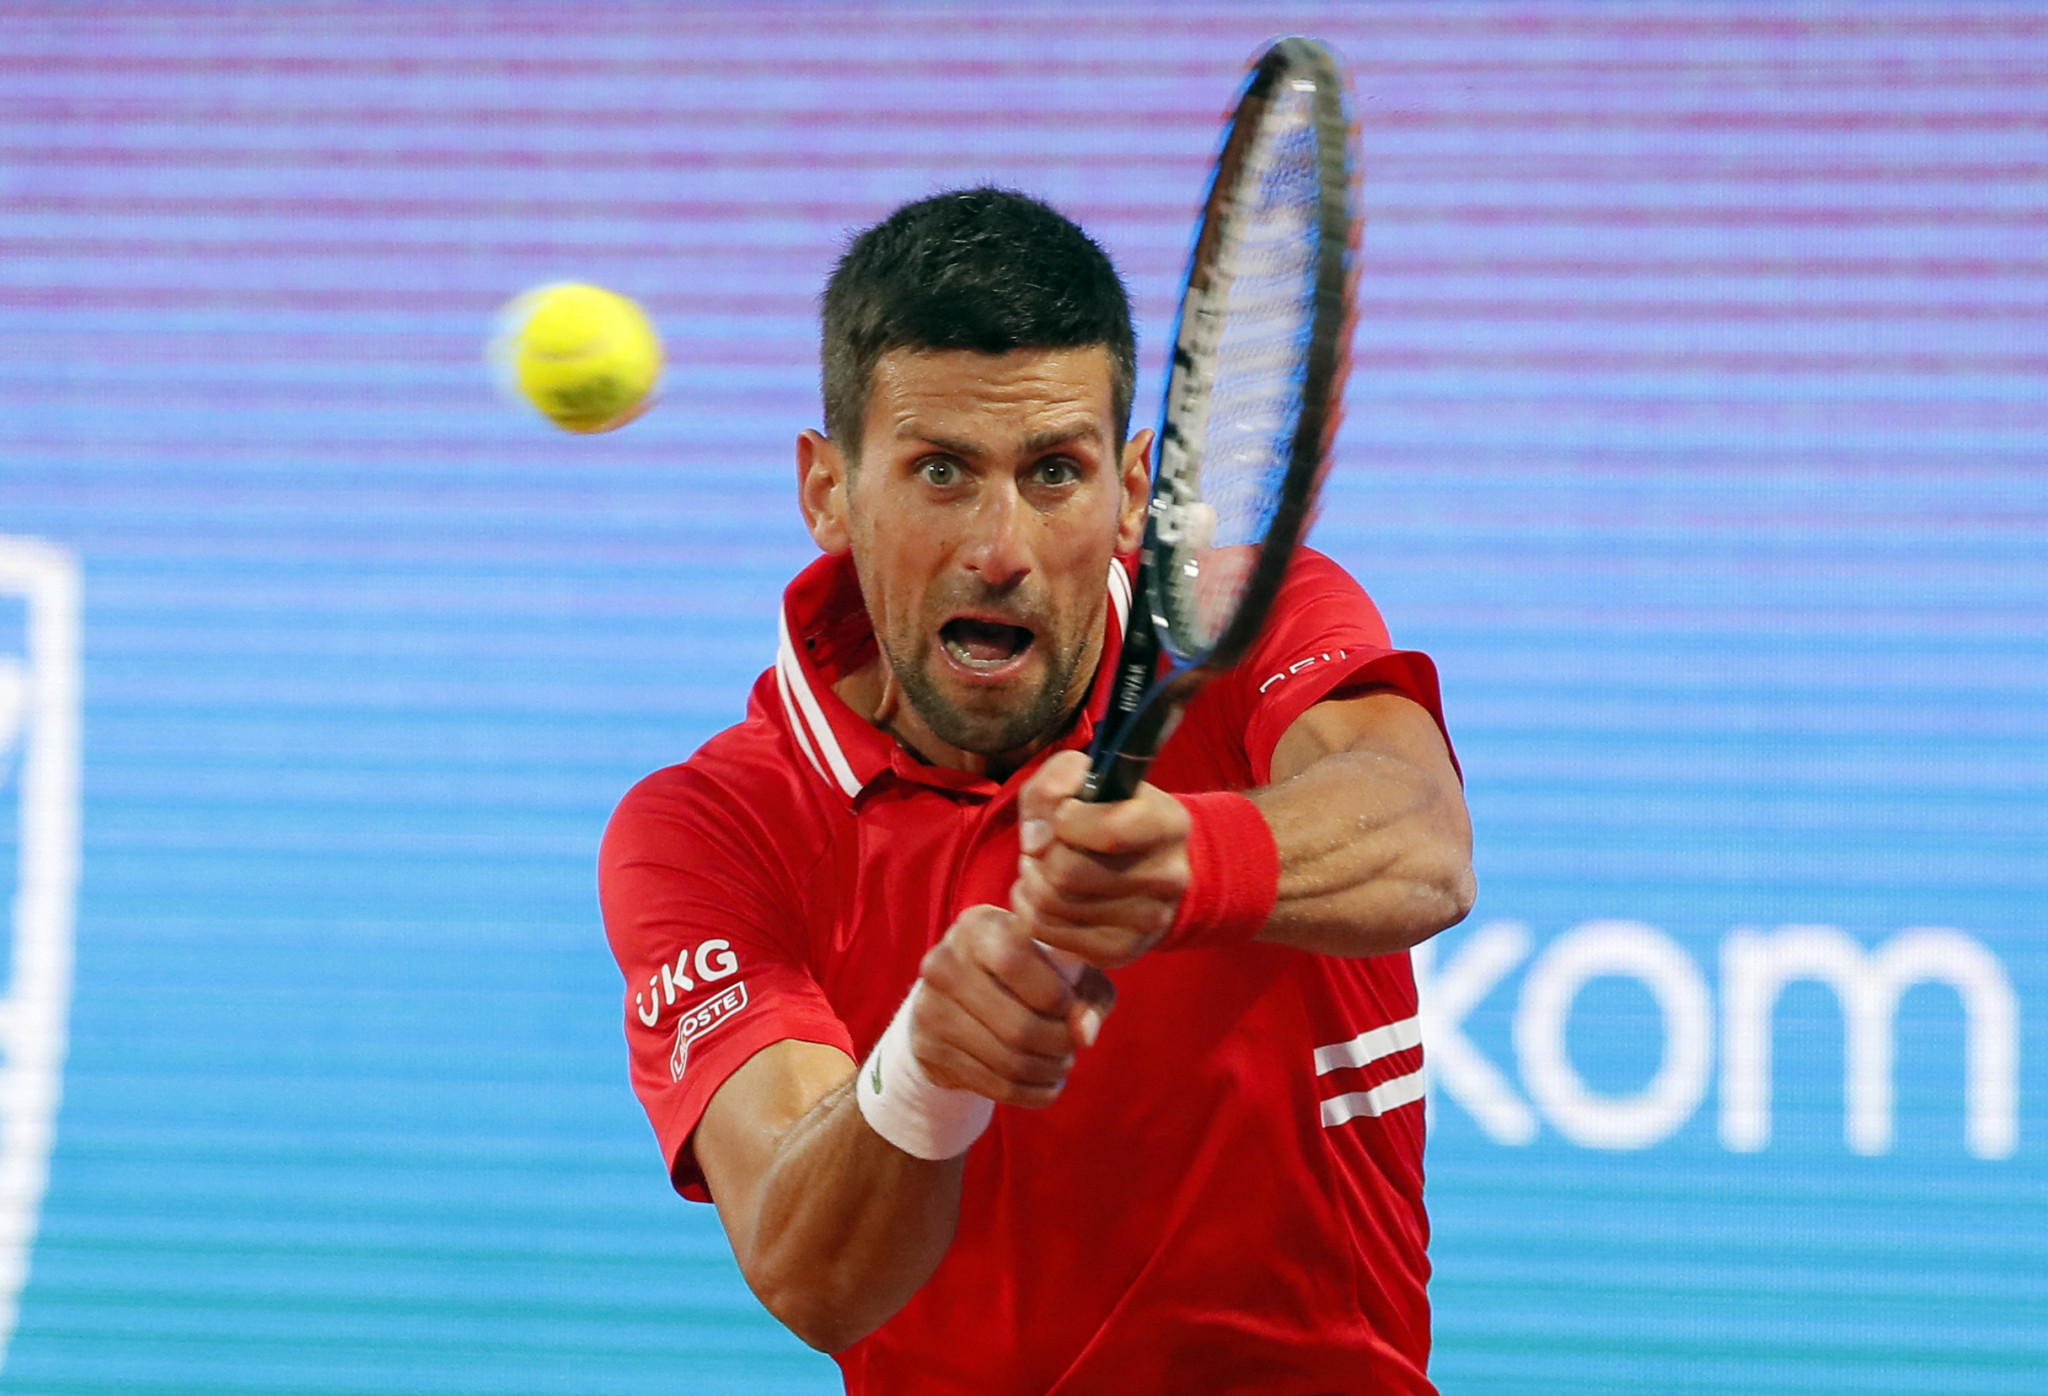 Novak Djokovic has decided to pull out of the Madrid Open ©Getty Images